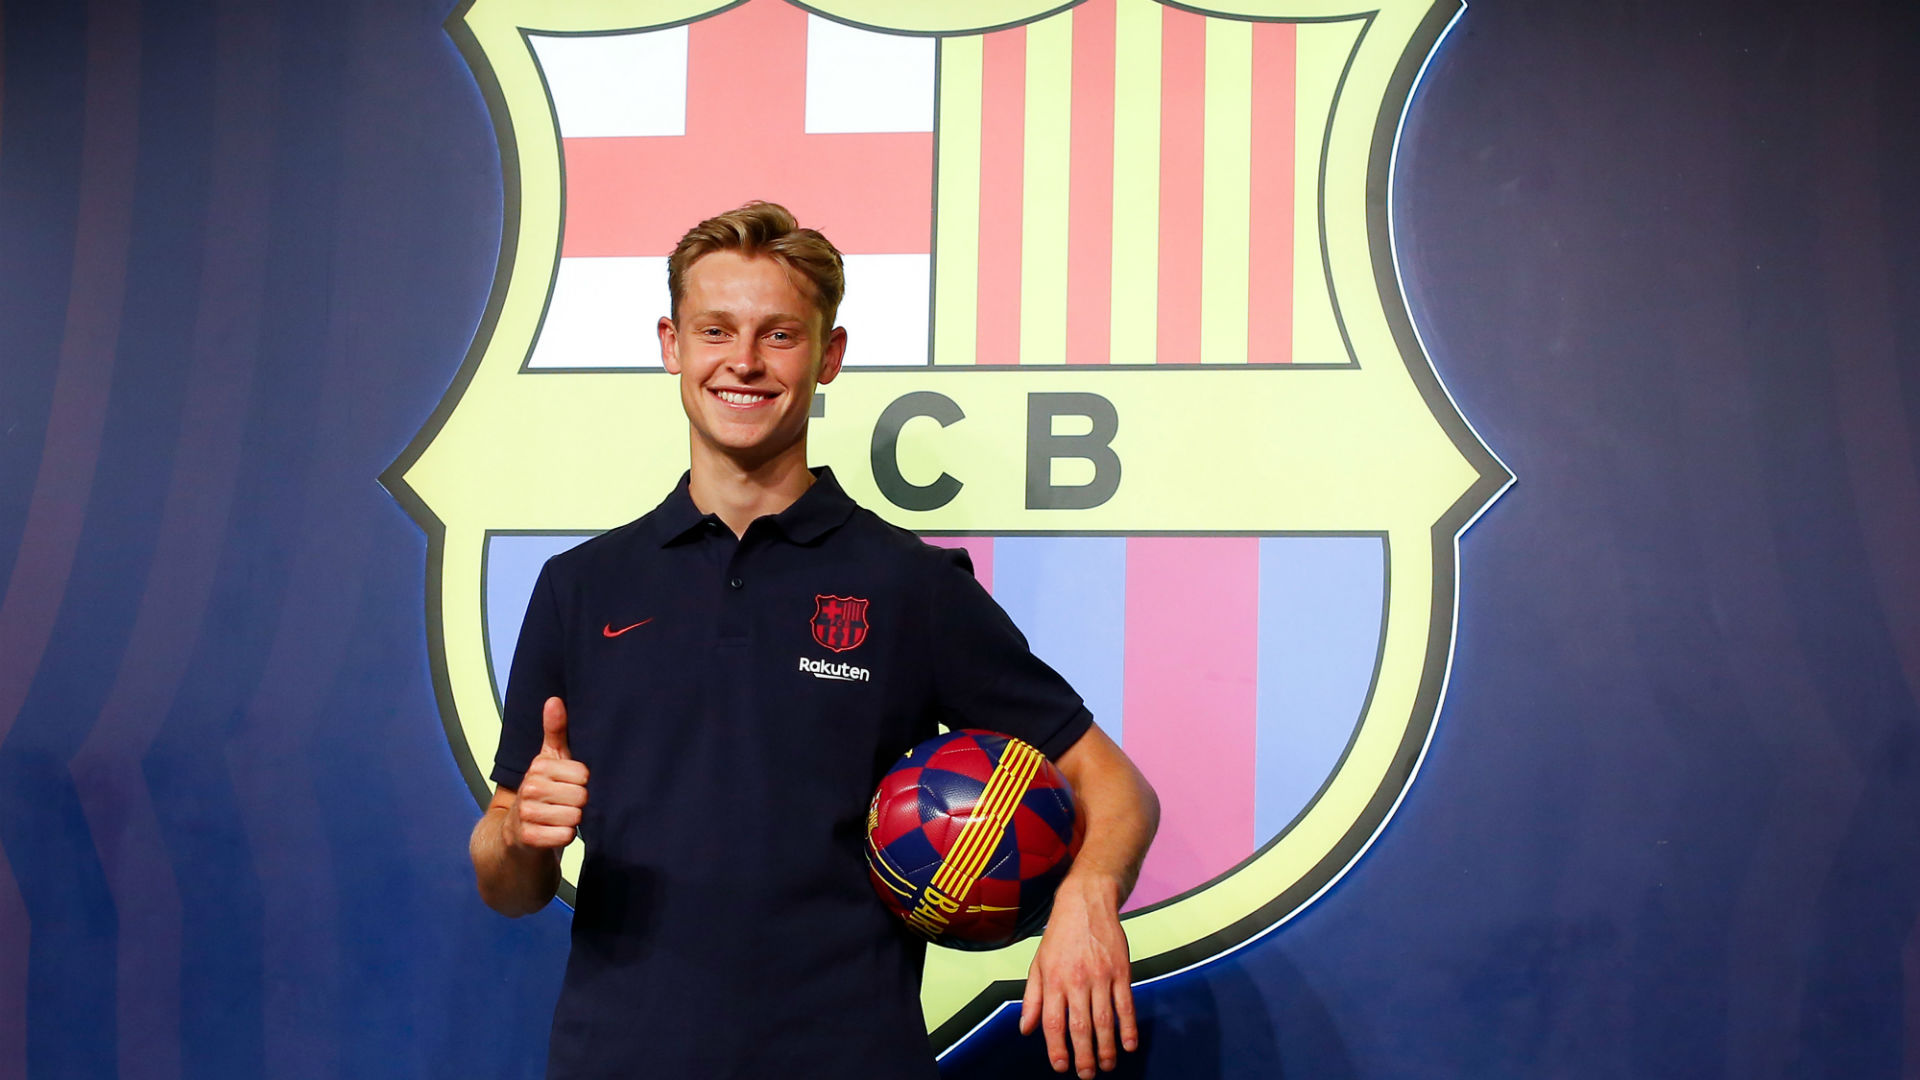 Frenkie de Jong keen to sustain Cruyff traditions at Barcelona